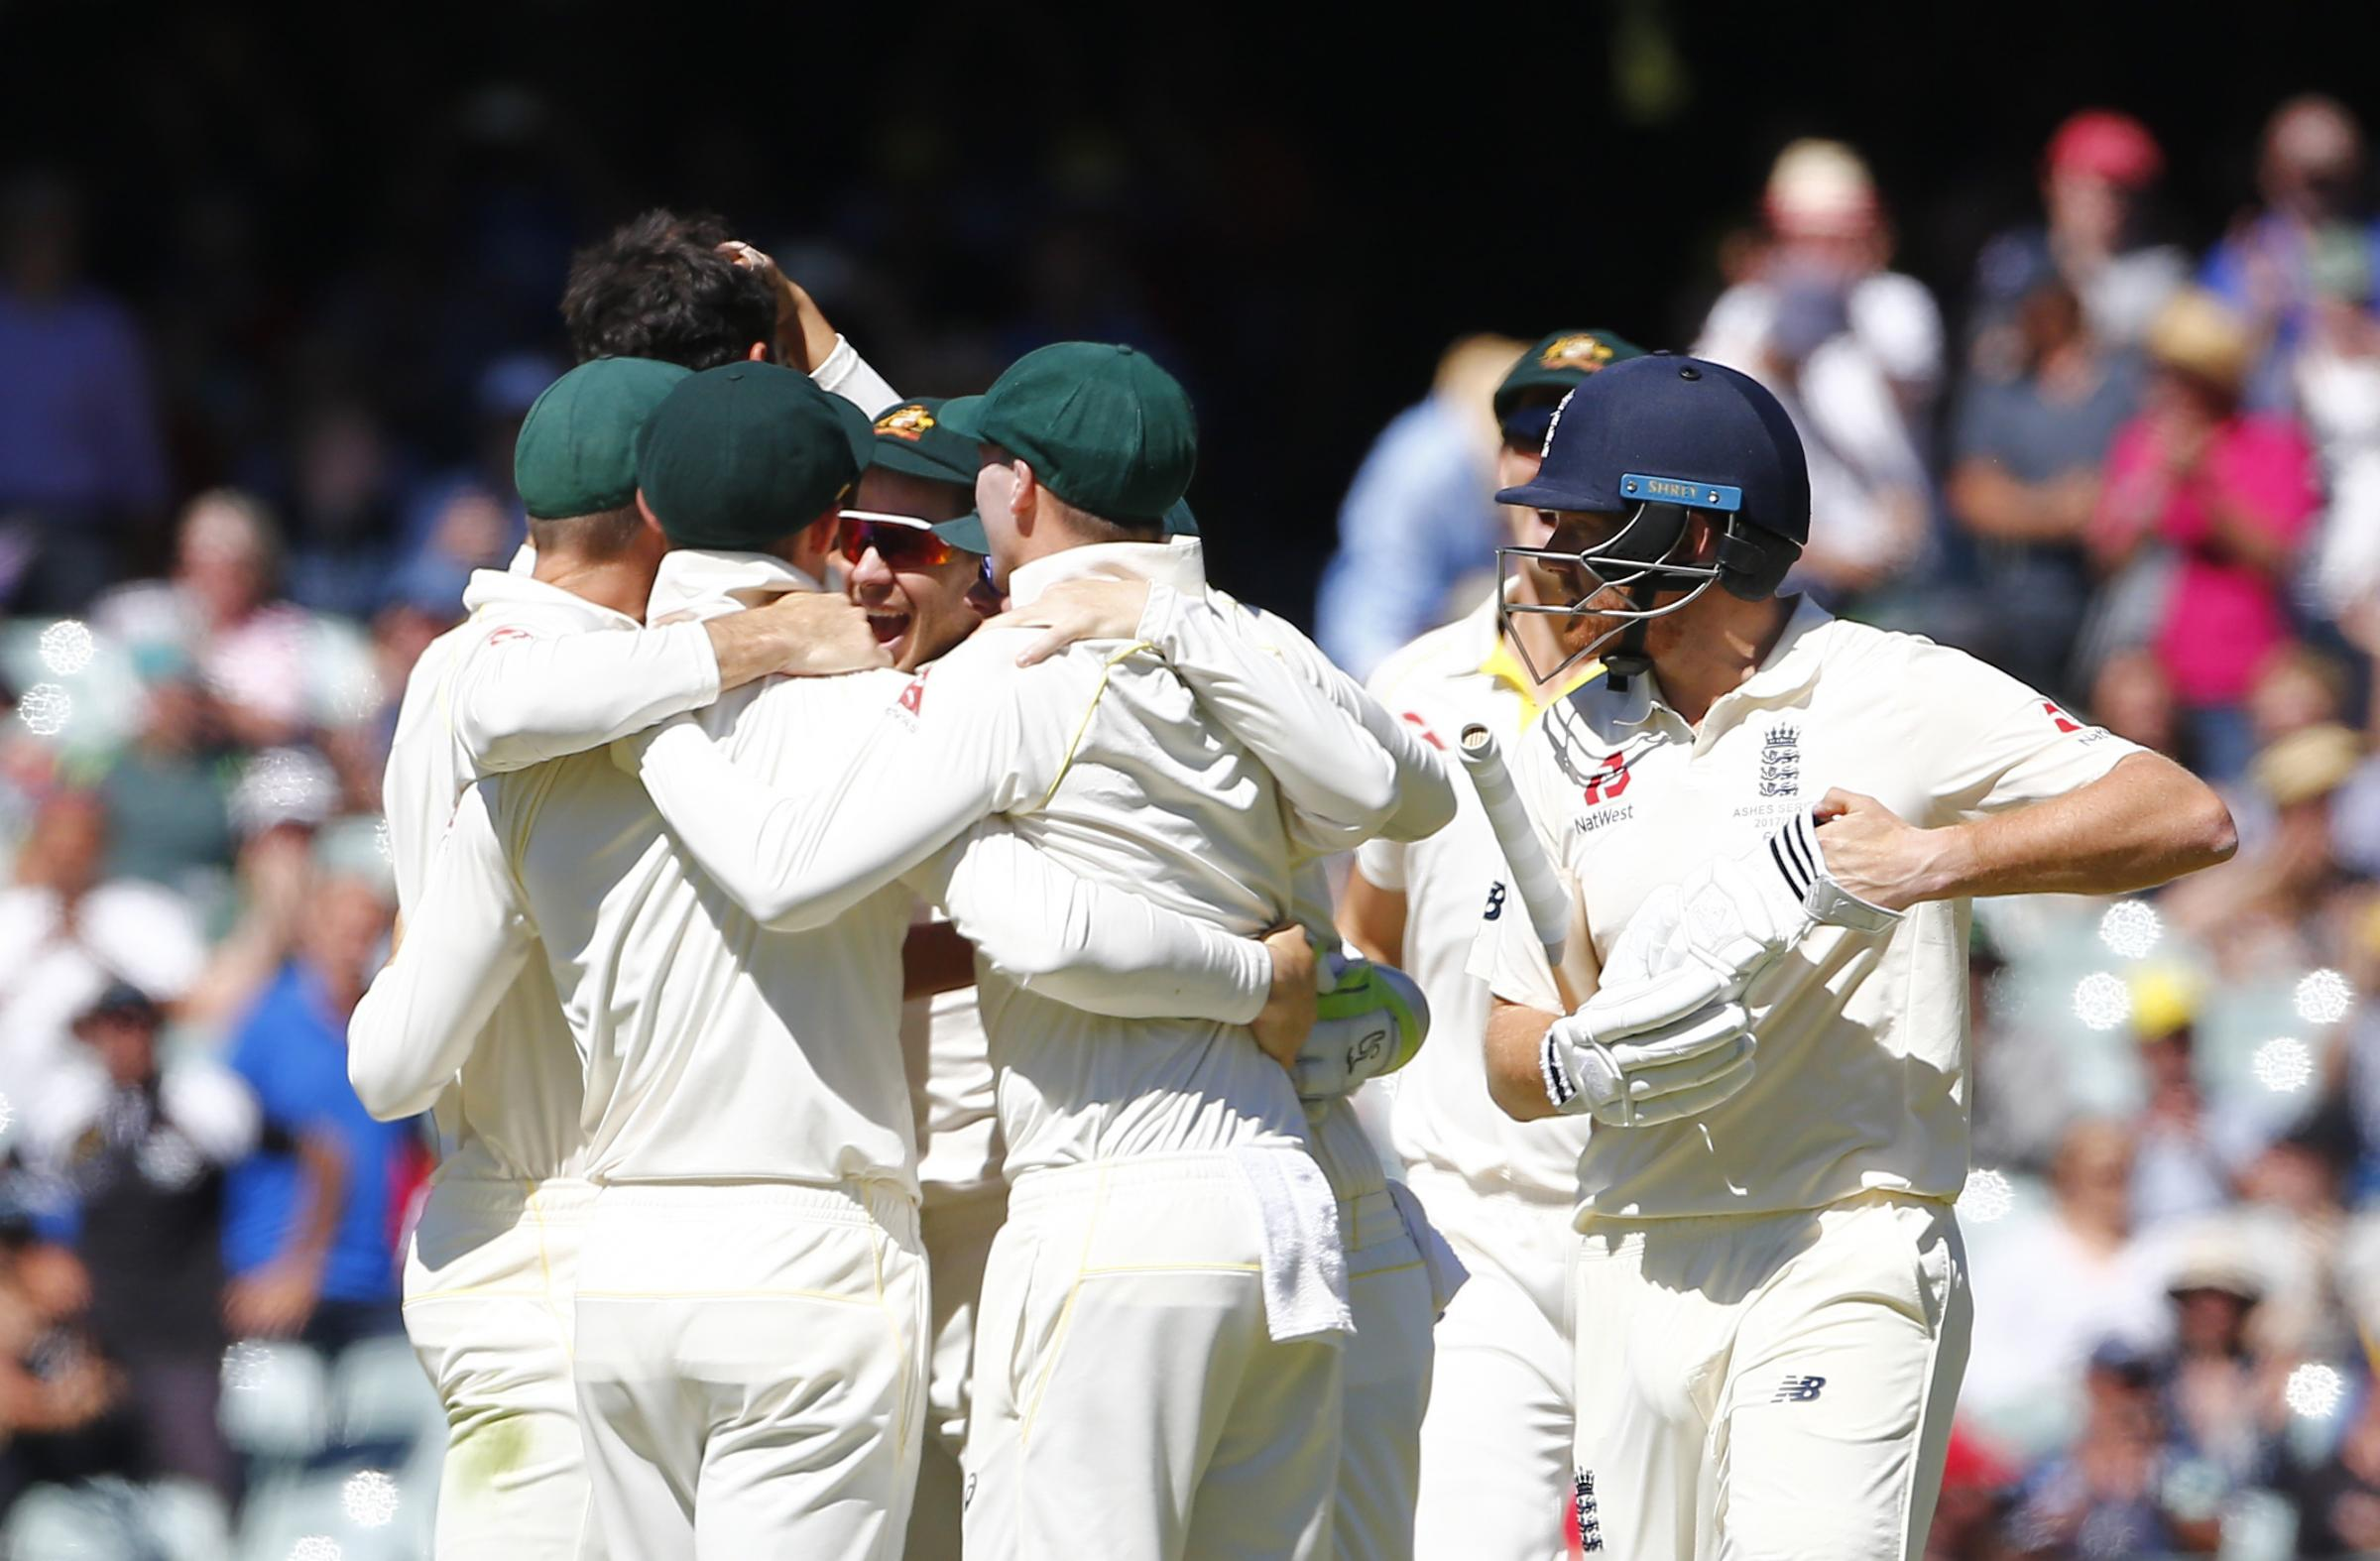 Australia players celebrate the wicket of Jonny Bairstow which clinched victory in the second Test against England at the Adelaide Oval. Picture: Jason O'Brien/PA Wire